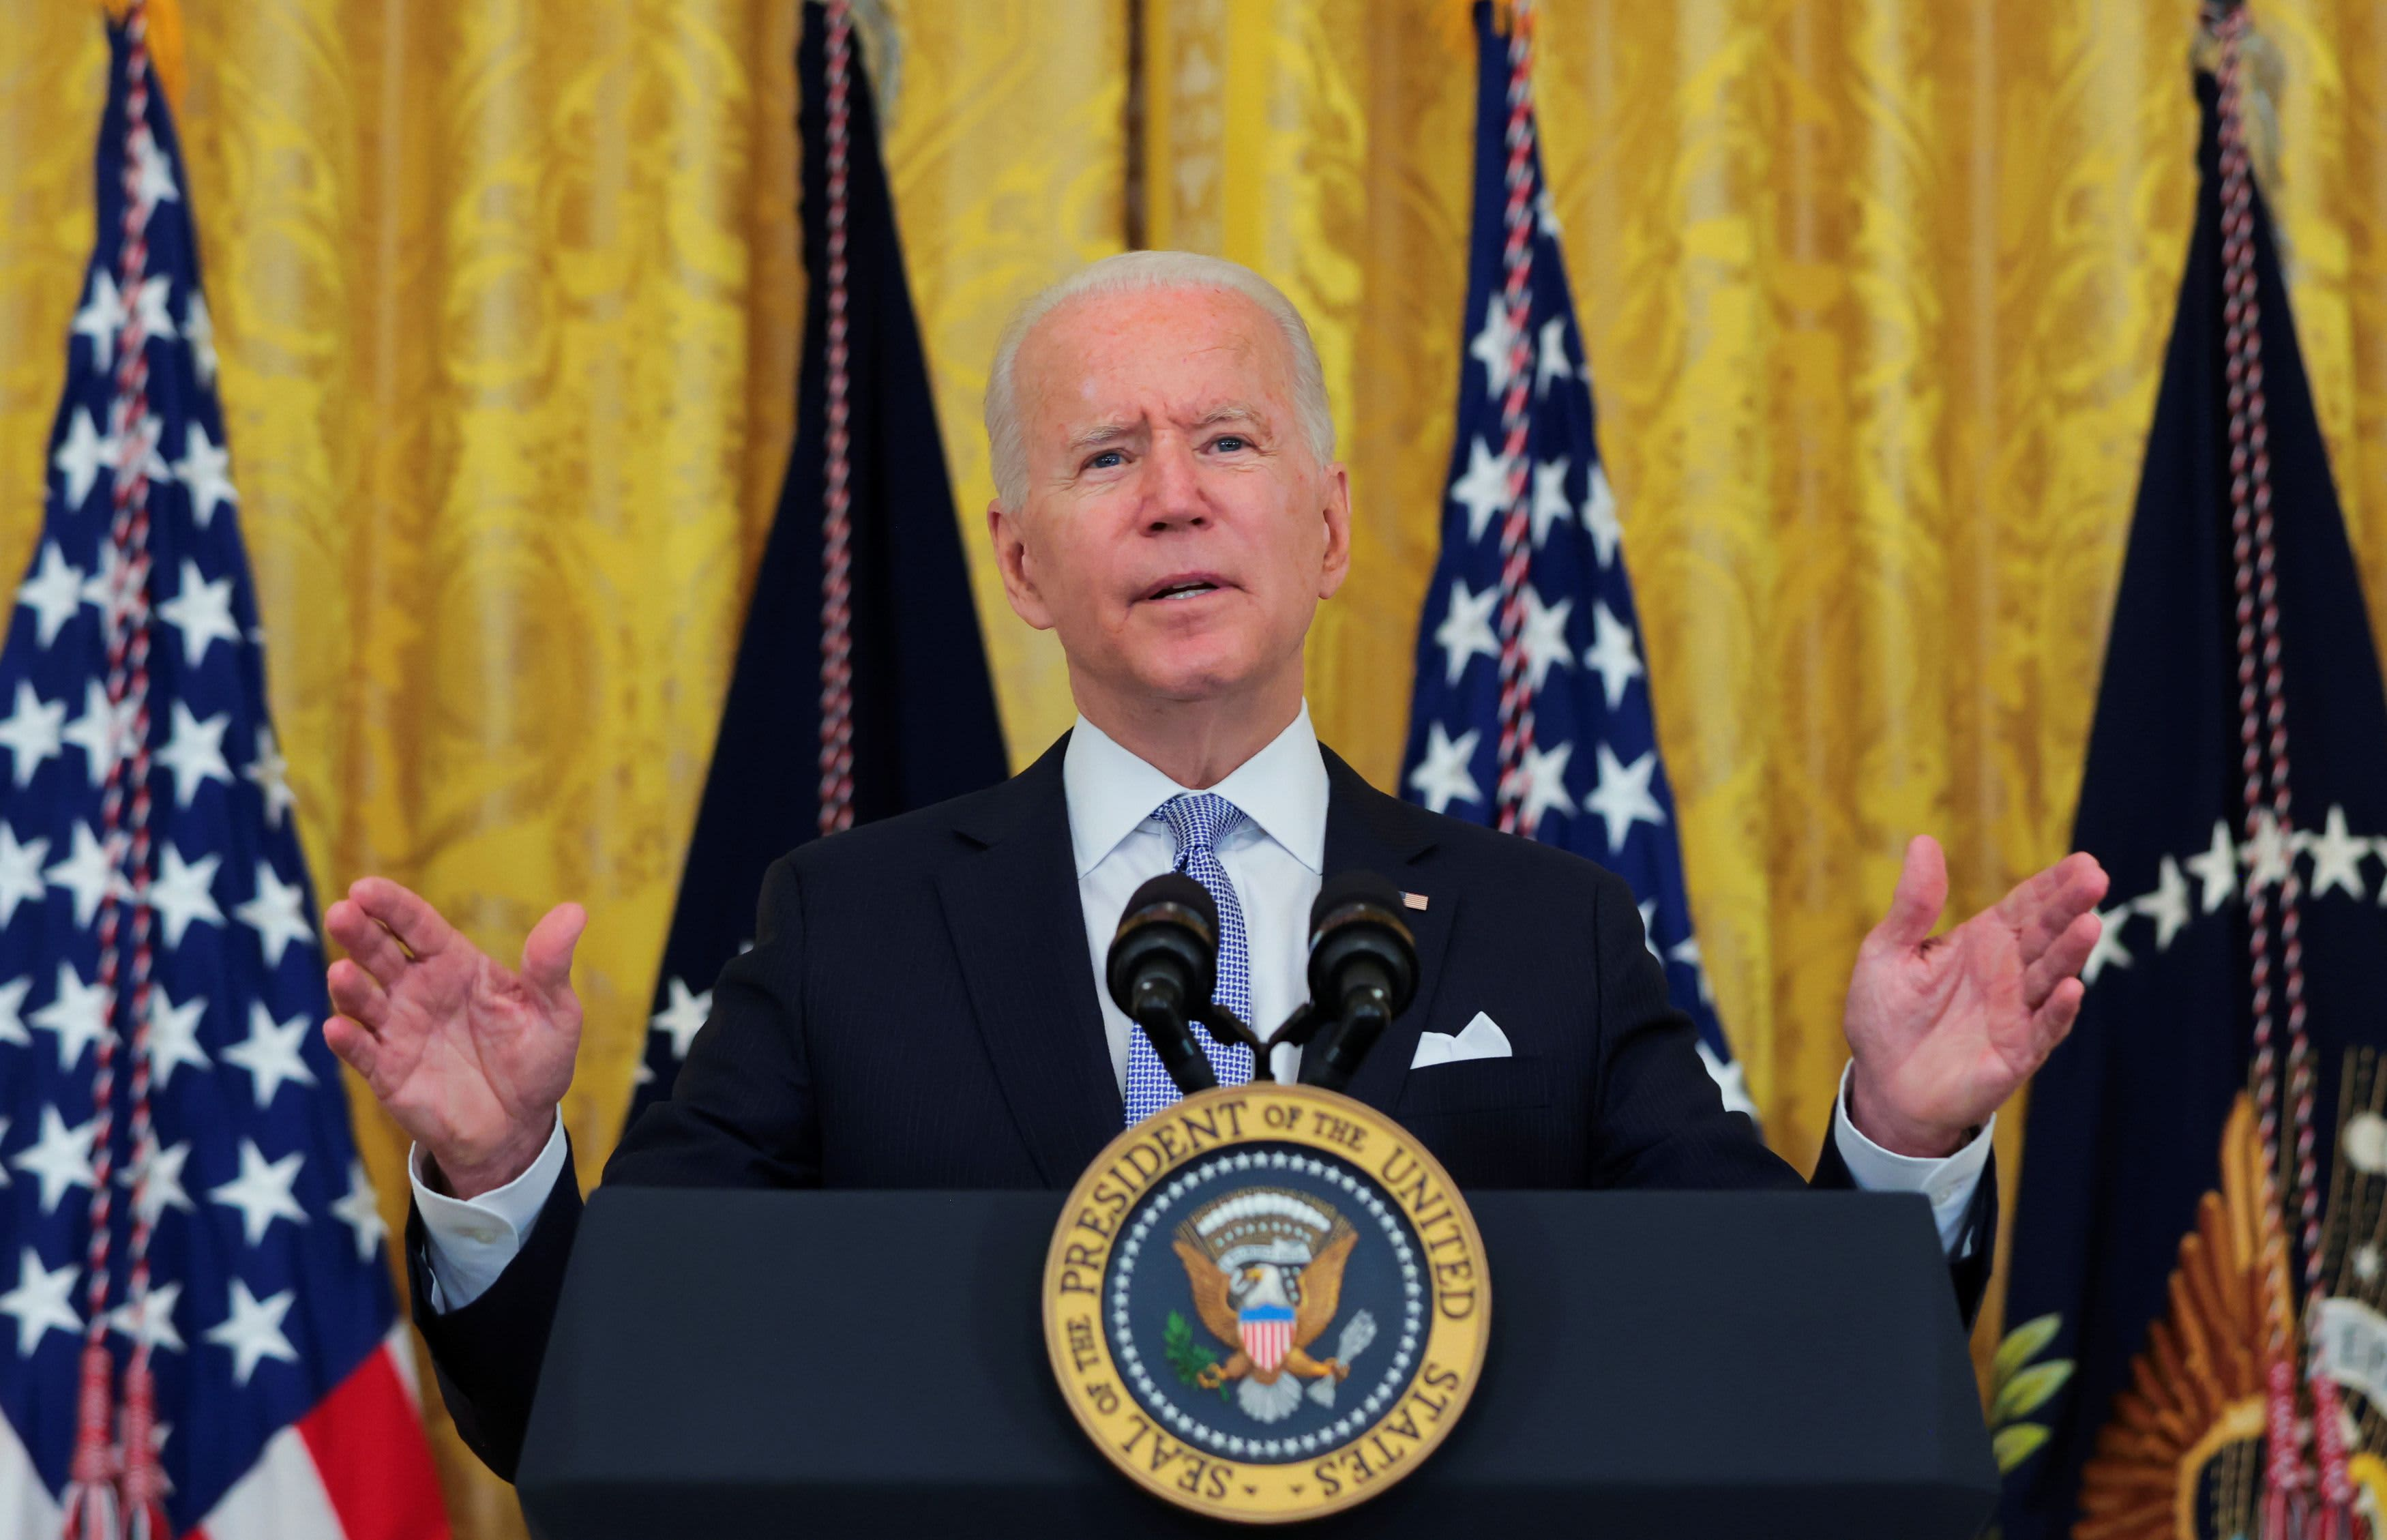 Biden requiring federal workers to prove Covid vaccine status or submit to strict safety rules